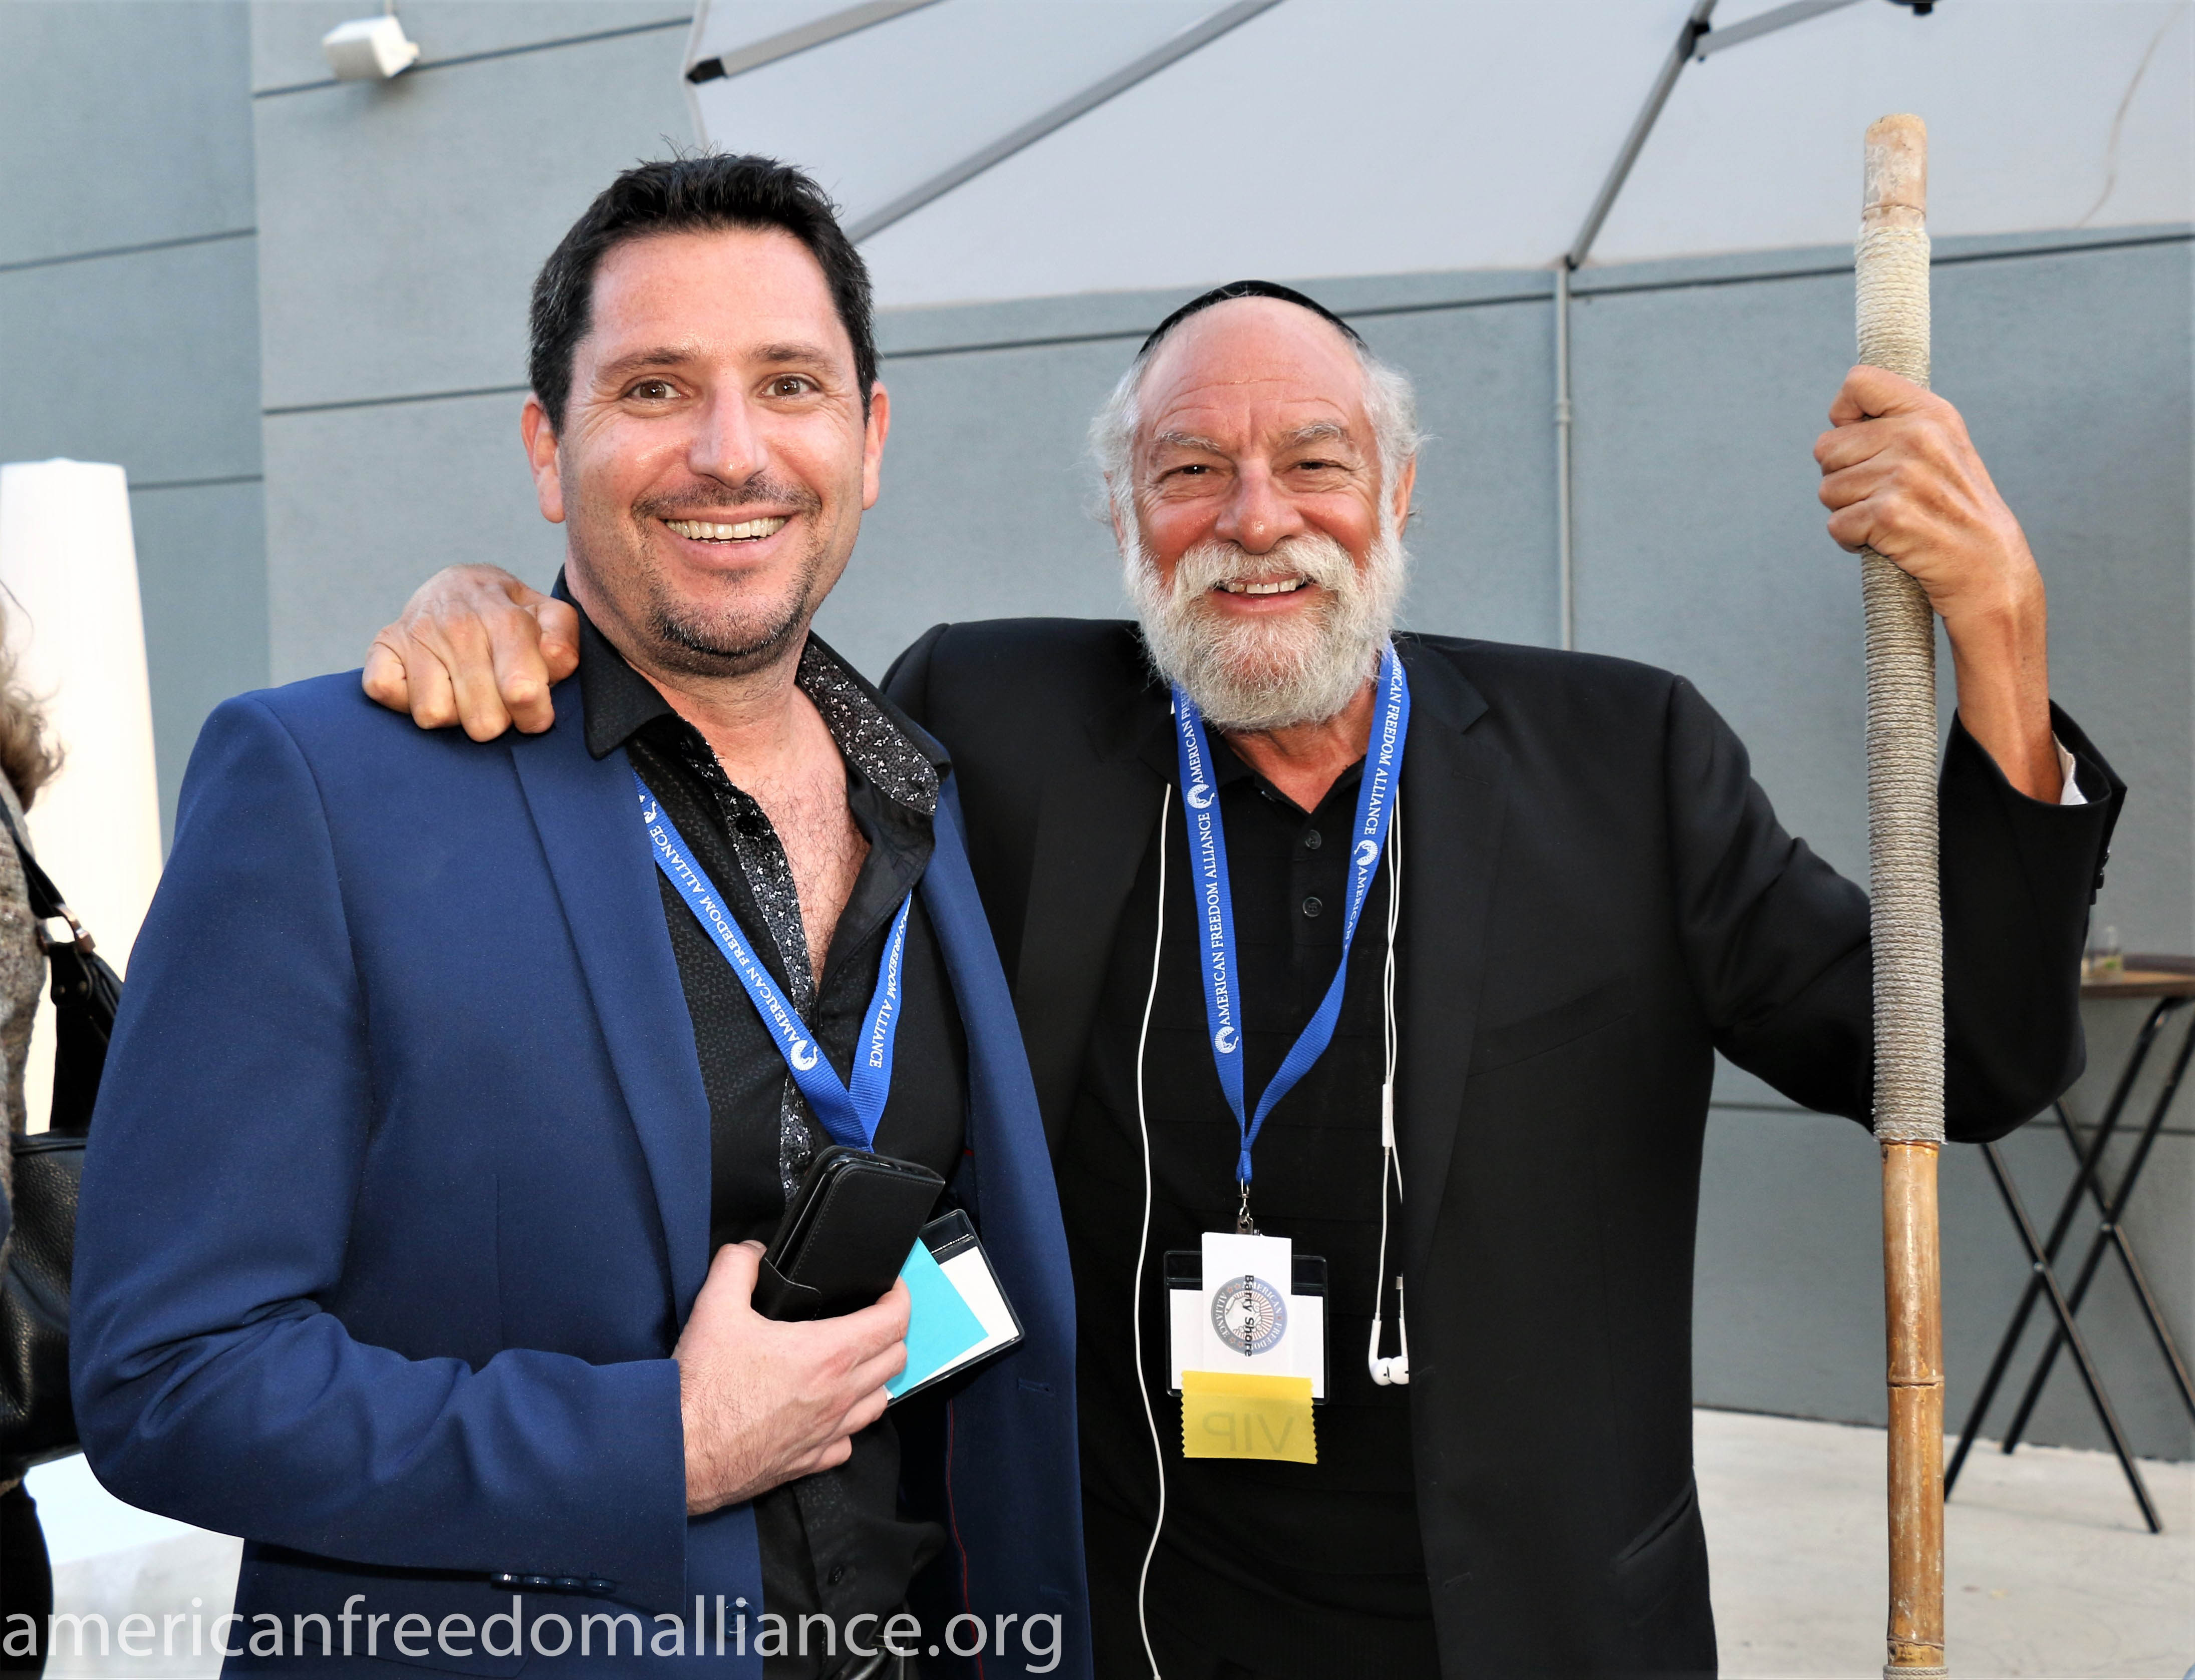 Barry Shore and Dave Sussman